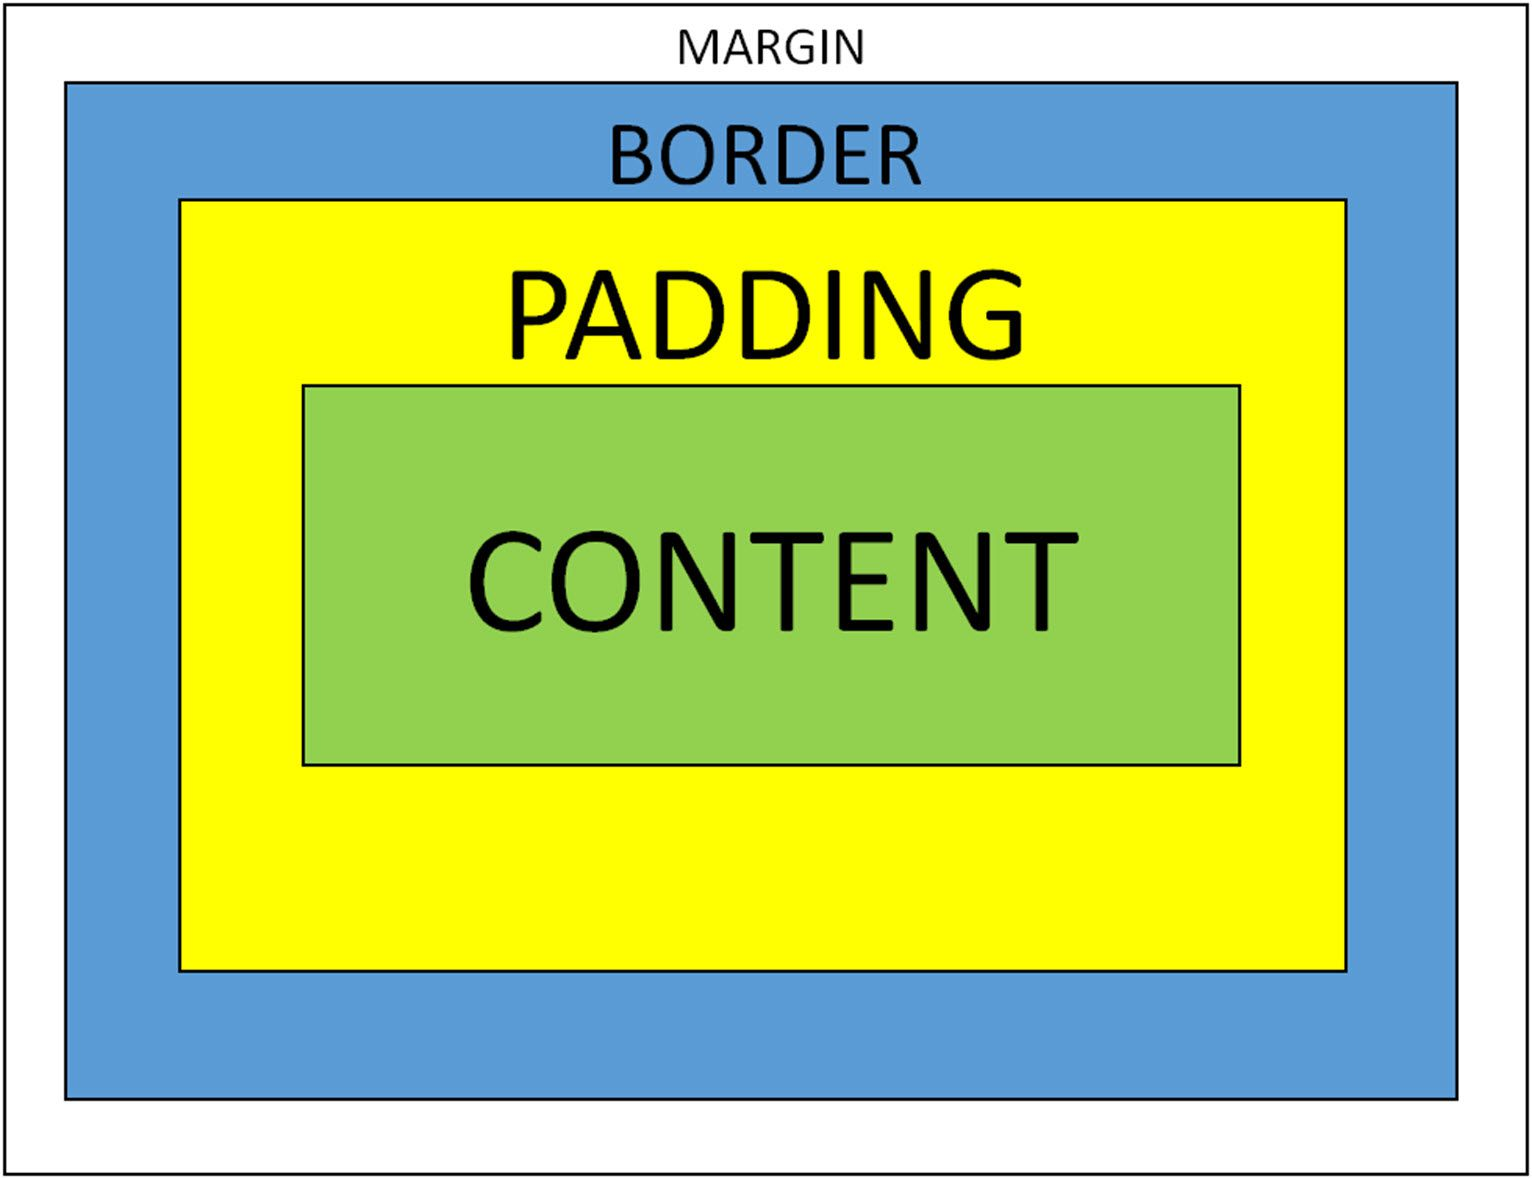 An illustration demonstrating and padding, borders, and margins.